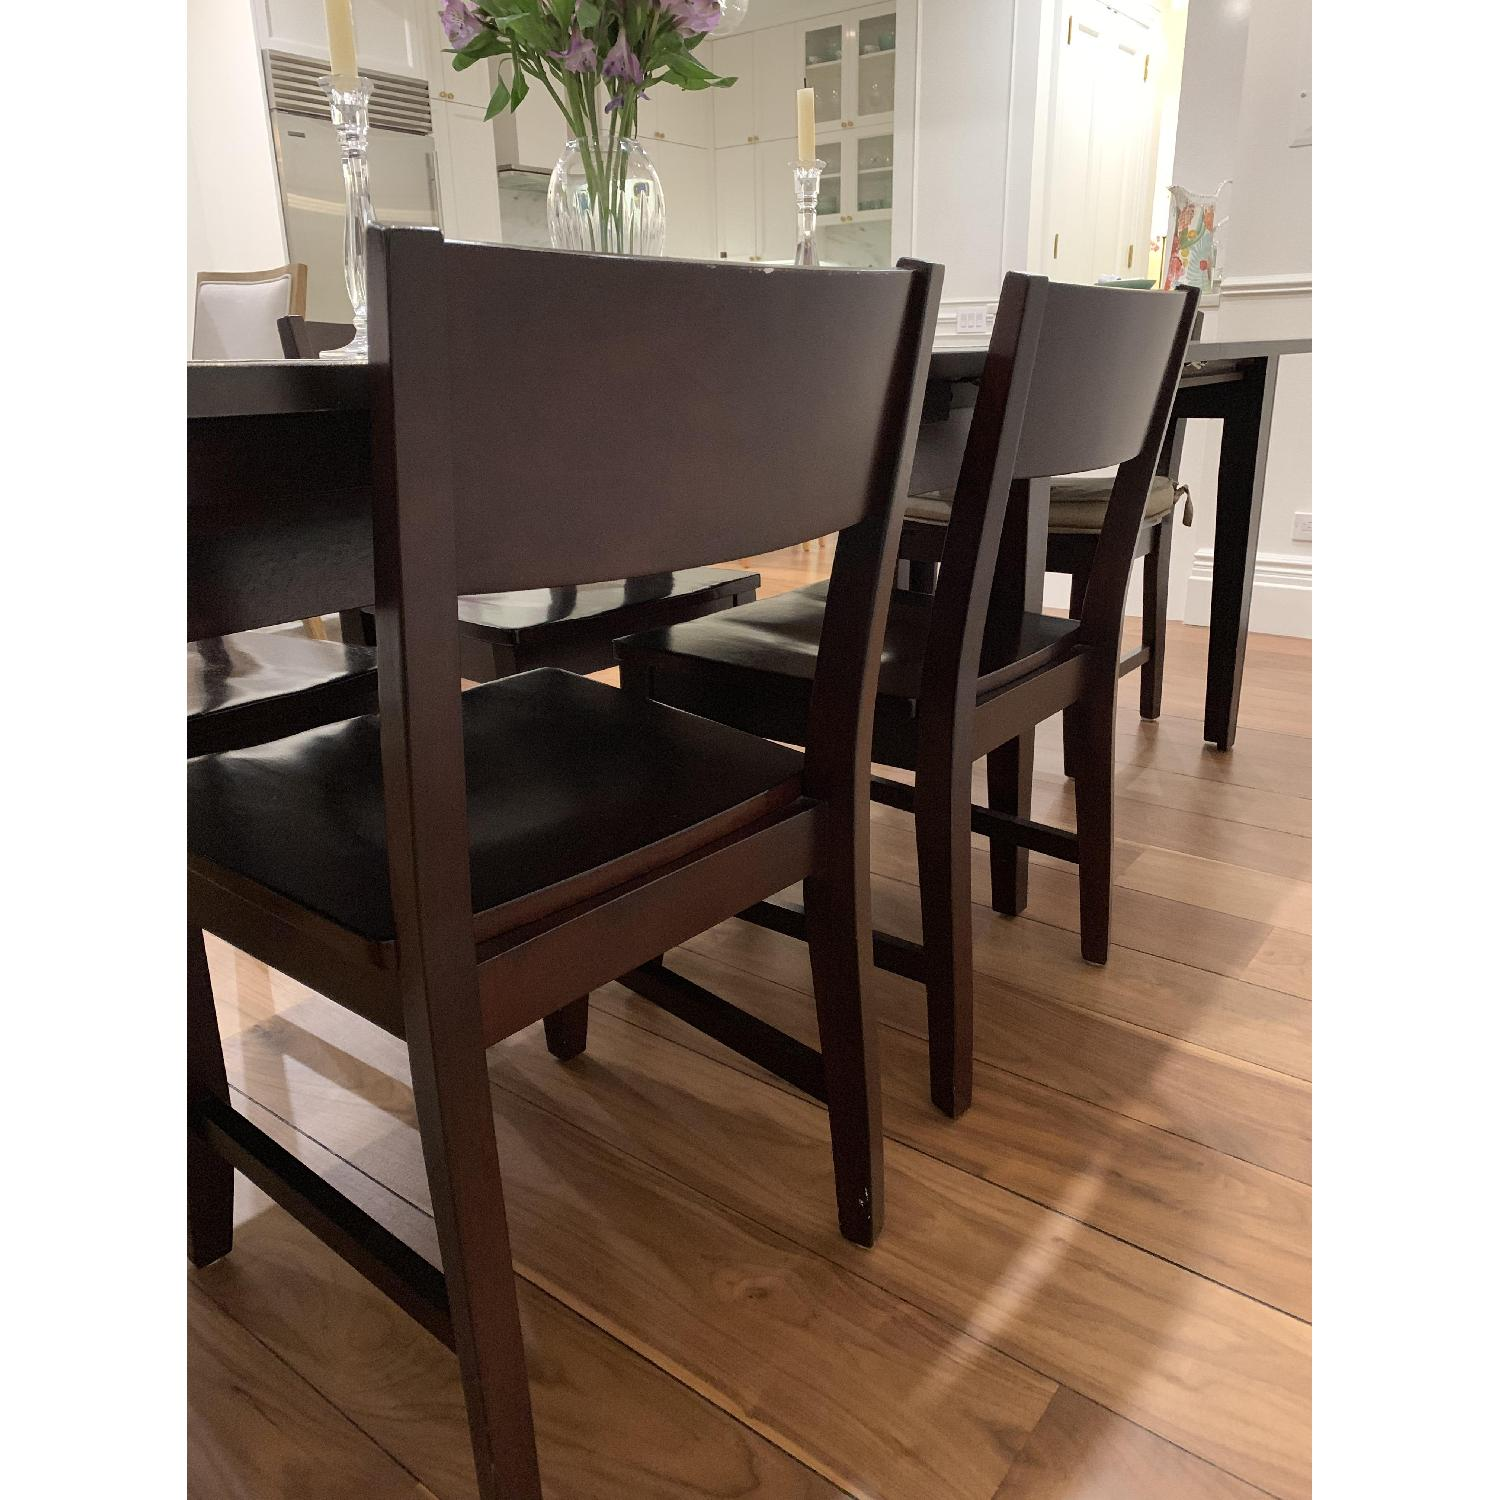 Montreal Espresso Wood Chairs - image-15